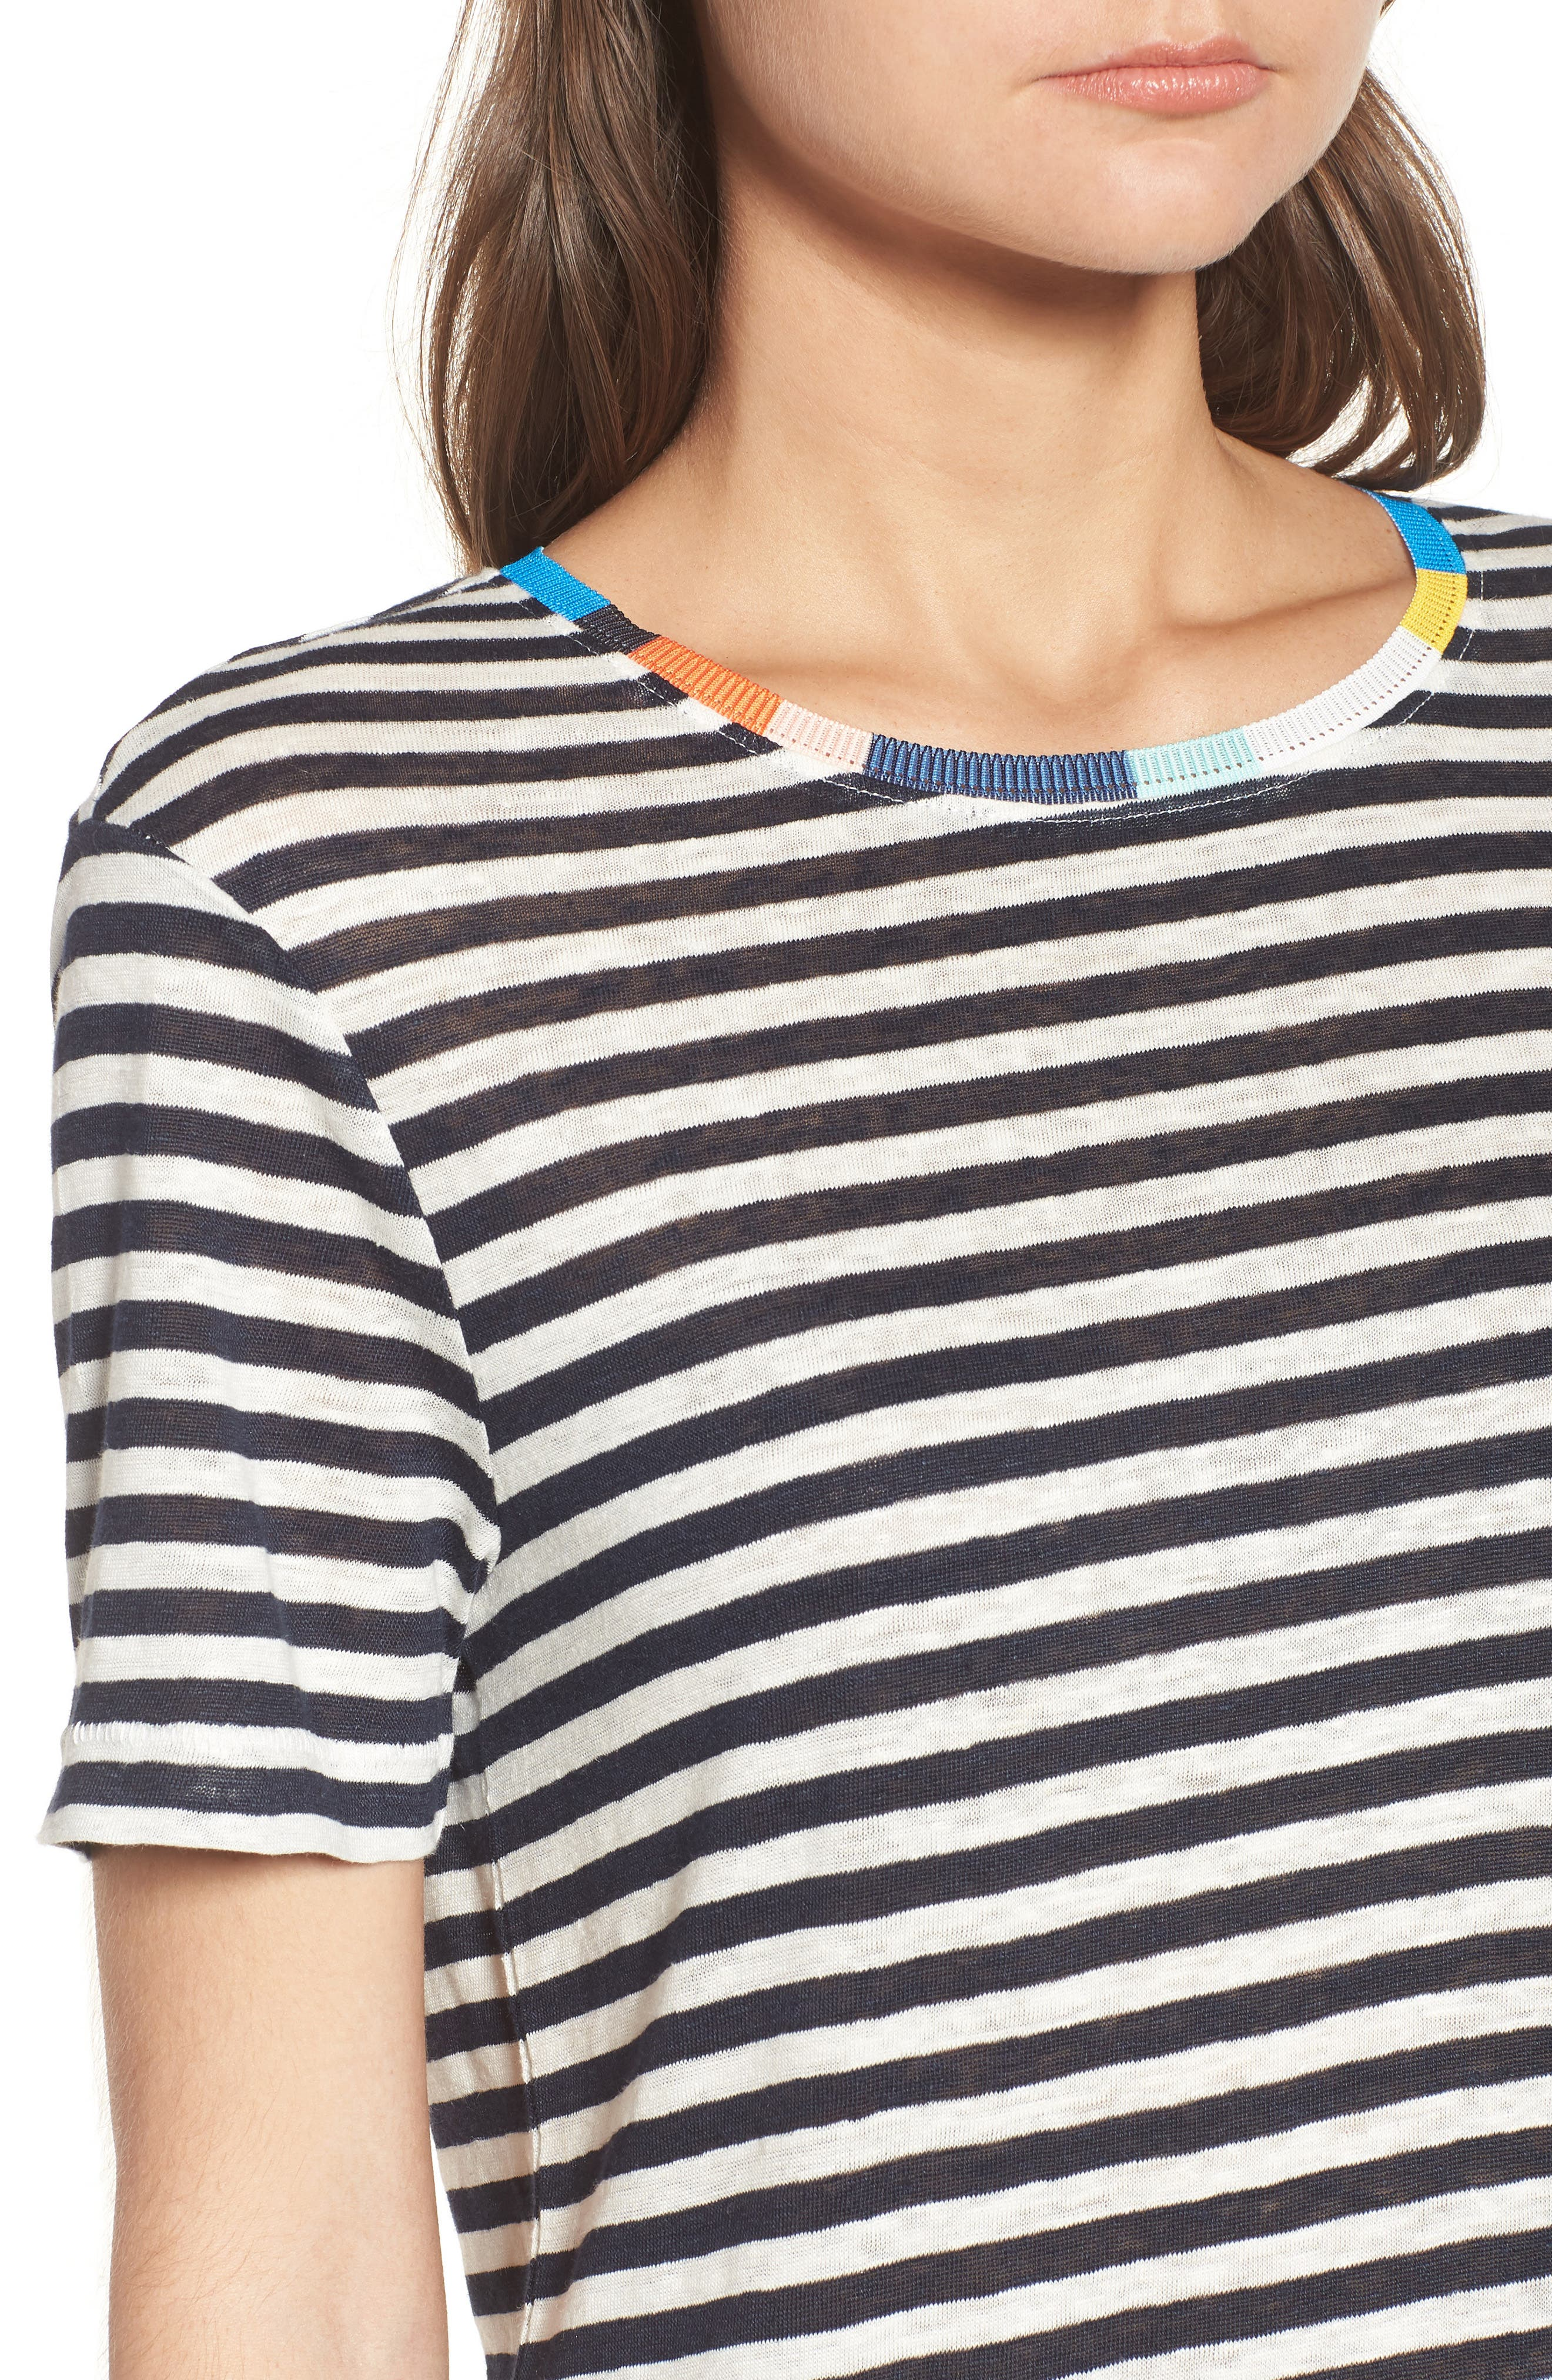 x Margherita Ciao Bella Stripe Tee,                             Alternate thumbnail 5, color,                             Natural/ Navy